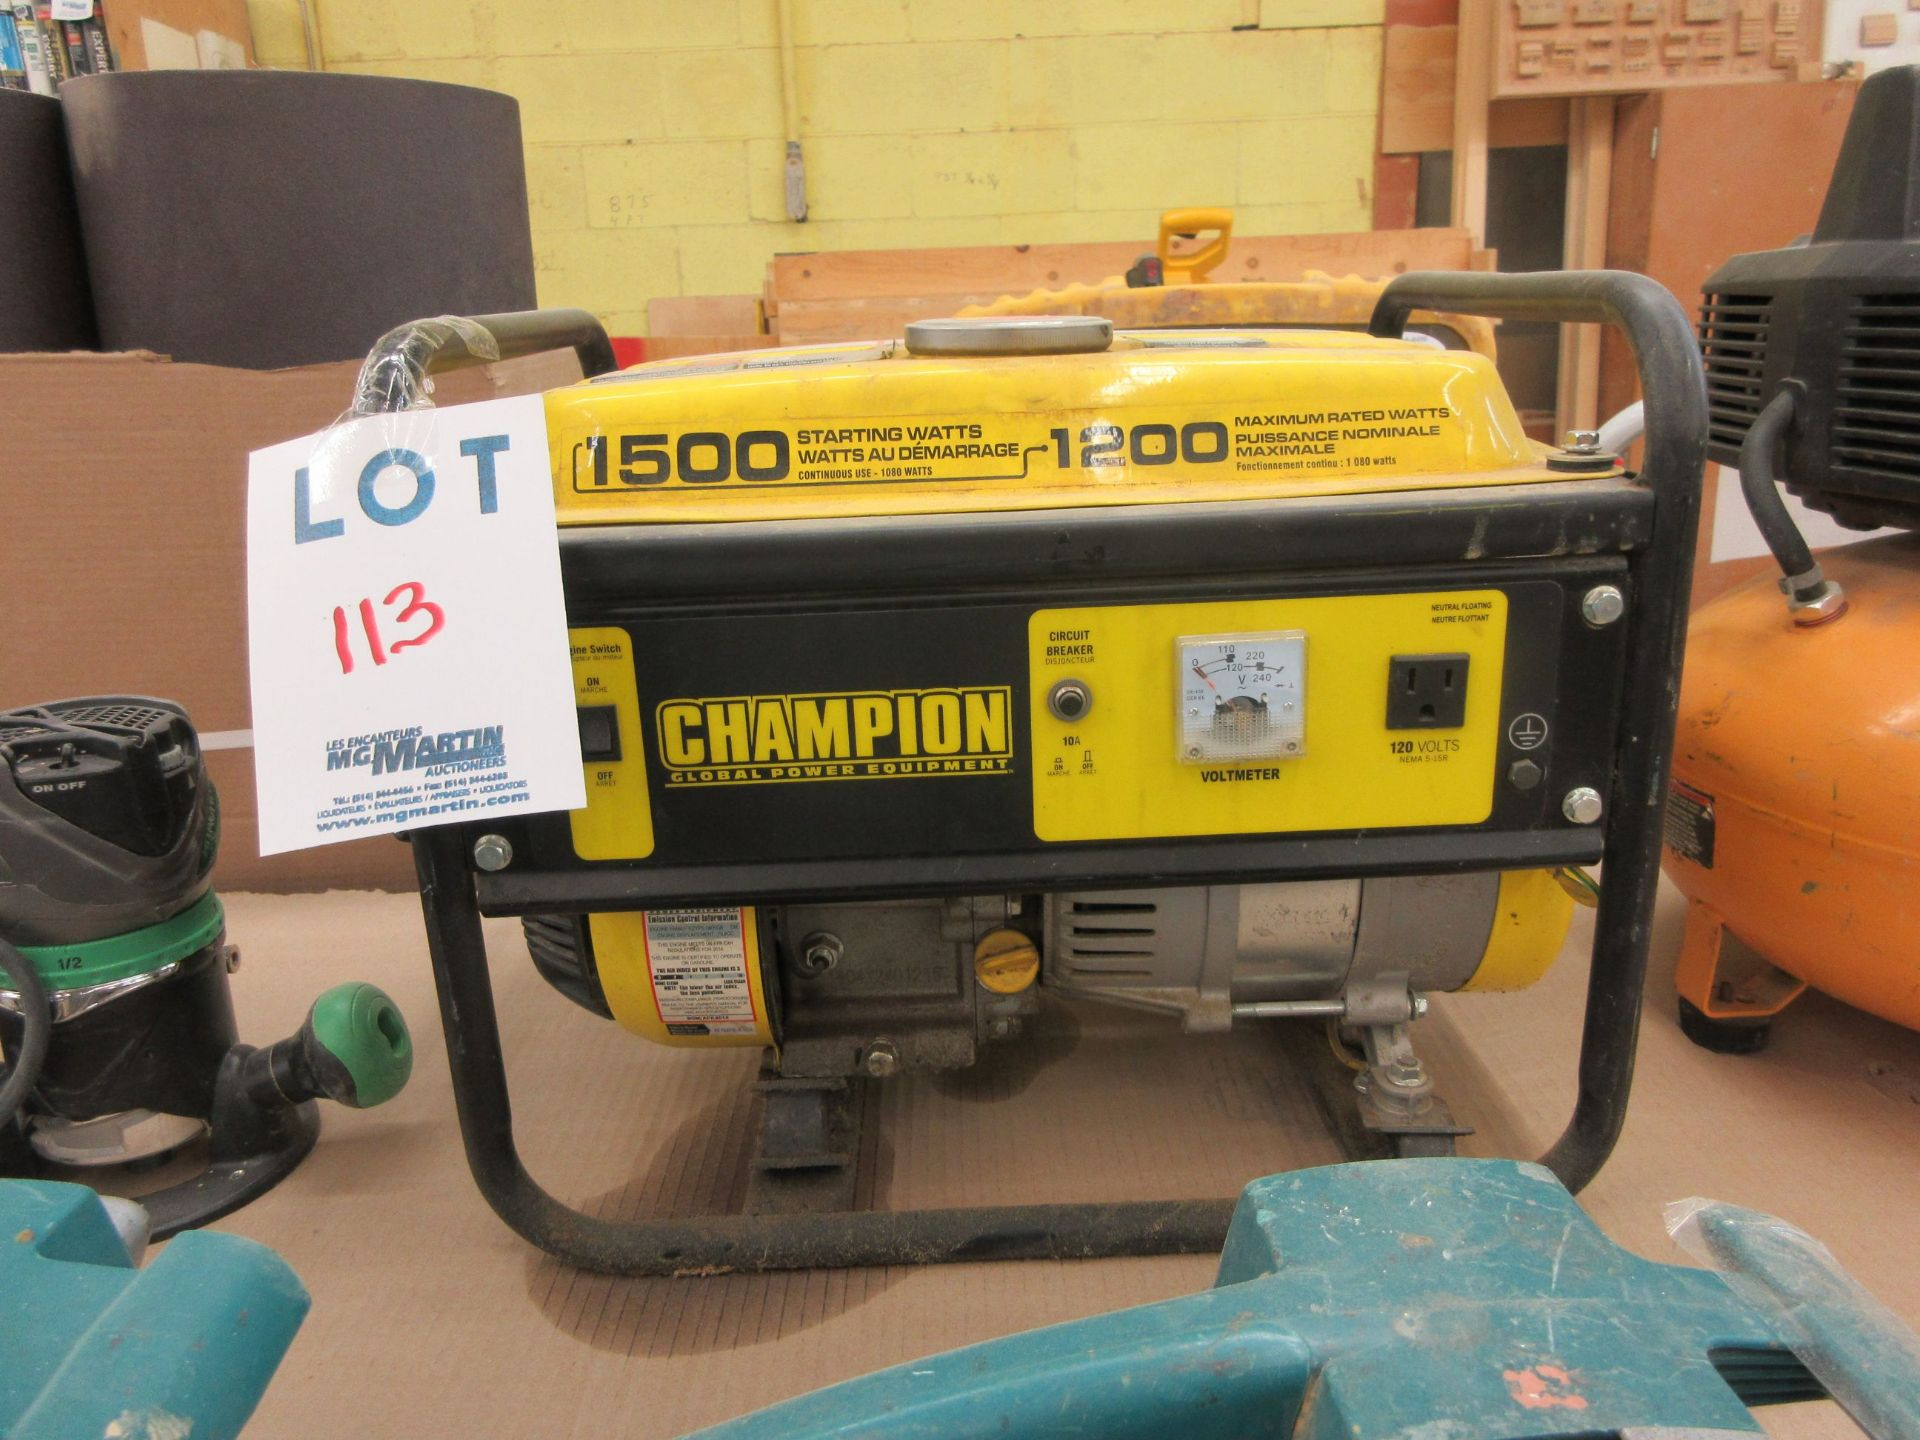 Lot 113 - CHAMPION 1500 watts generator